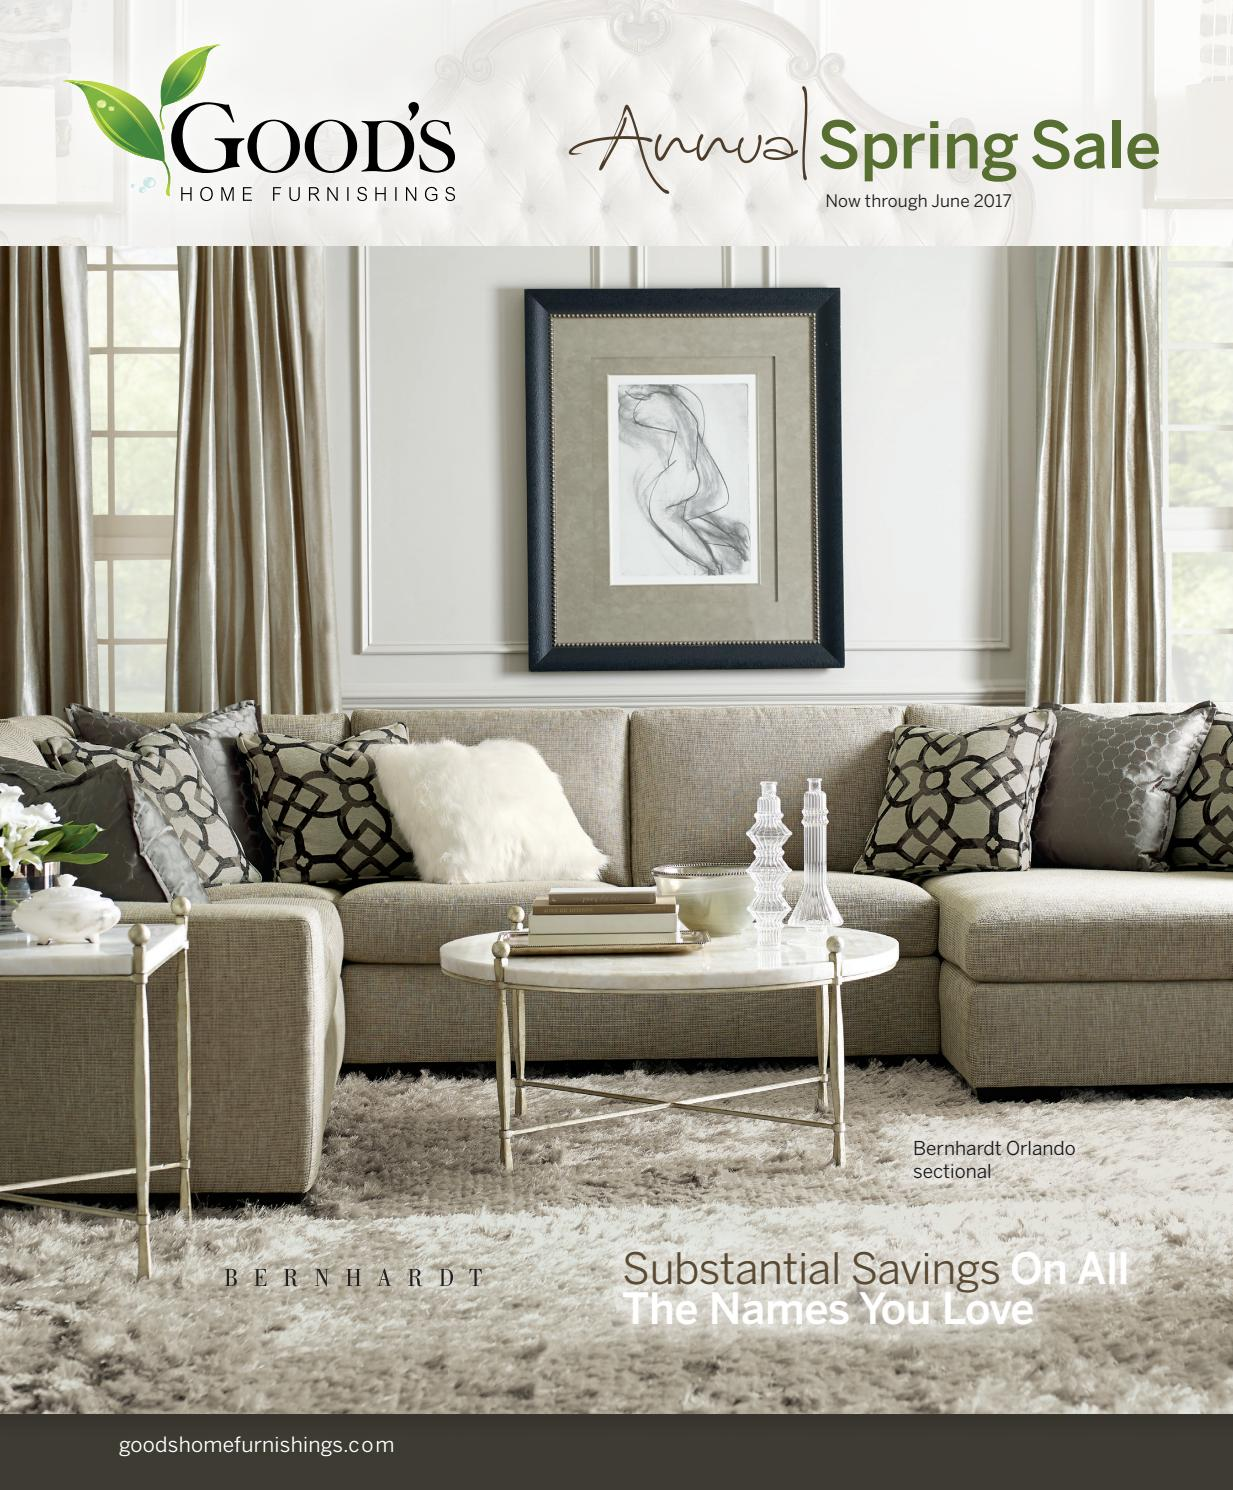 Goods Home Furnishings Spring Sale New Look Book   Substantial Savings On  Bedrooms  Living Rooms And Dining Rooms. Goods Home Furniture Blog   Furniture Stores and Discount